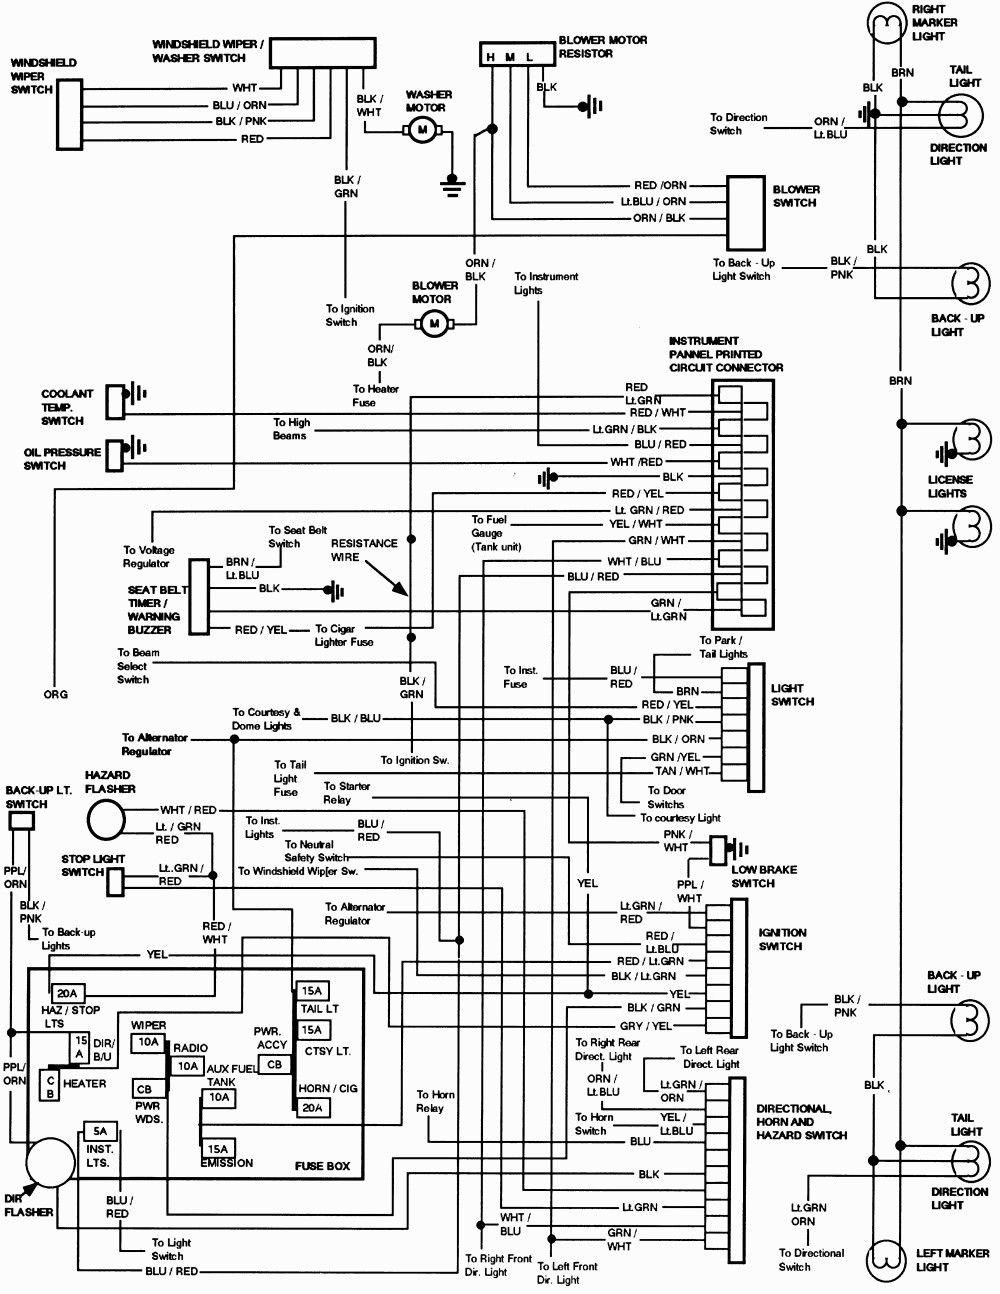 85 Ford Electrical Wiring Diagrams | Wiring Diagram  F Wiring Diagram Free Picture on taurus wiring diagram, k5 blazer wiring diagram, fusion wiring diagram, crown victoria wiring diagram, windstar wiring diagram, civic wiring diagram, bronco wiring diagram, mustang wiring diagram, model a wiring diagram, f250 super duty wiring diagram, f150 wiring diagram,